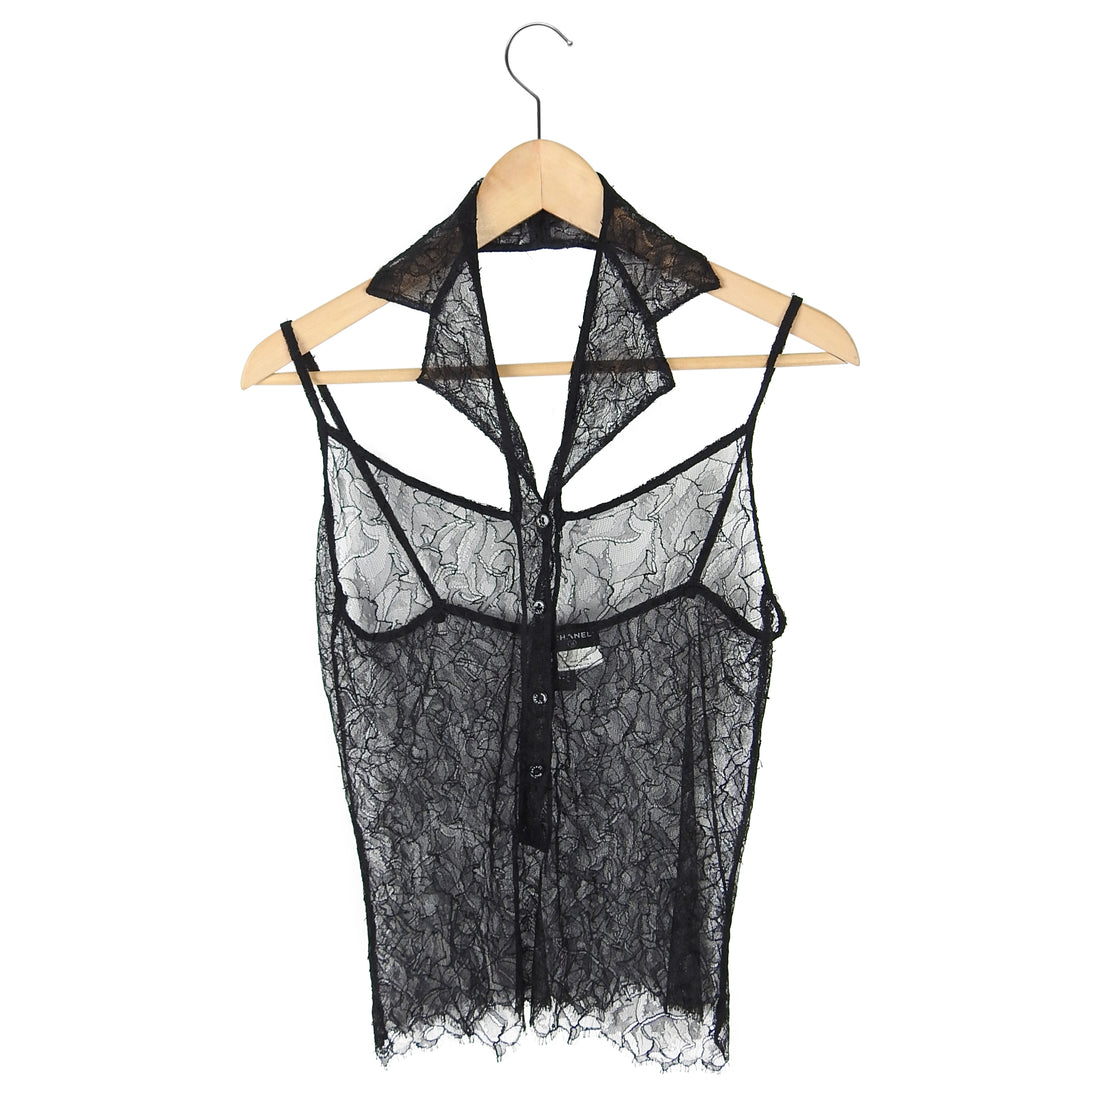 Chanel 04C Black Sheer Lace Tuxedo Halter Top - XS